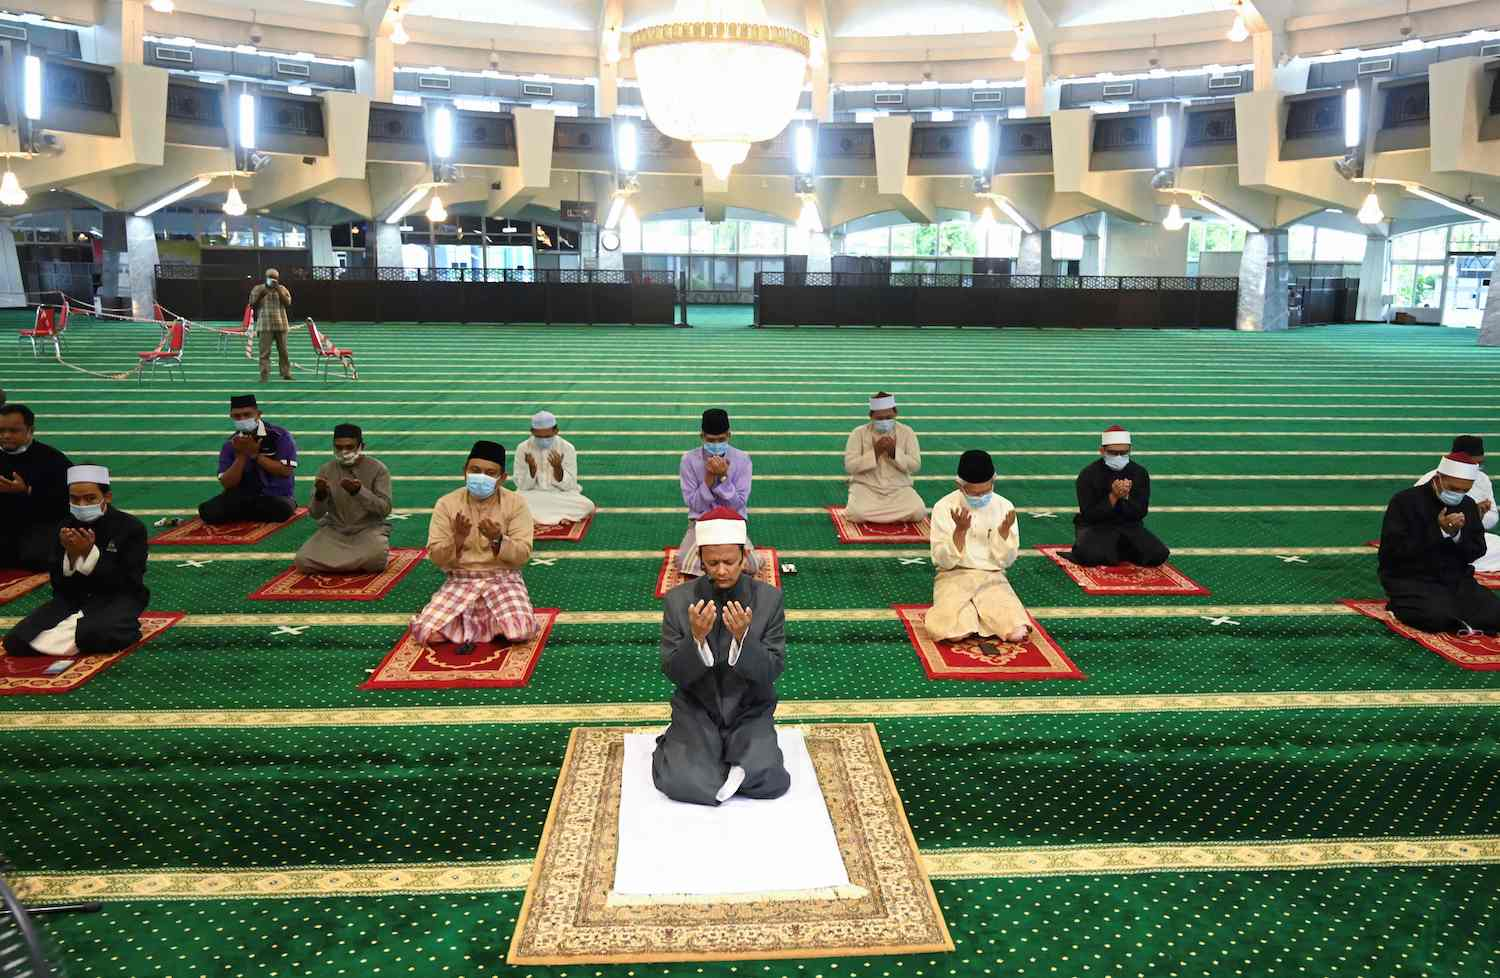 Muslim men observe social distancing during Friday prayers at the state mosque in Penang, Malaysia, ahead of Eid al-Fitr which fell on Saturday night and marked the end of the holy month of Ramadan. (AFP Photo)